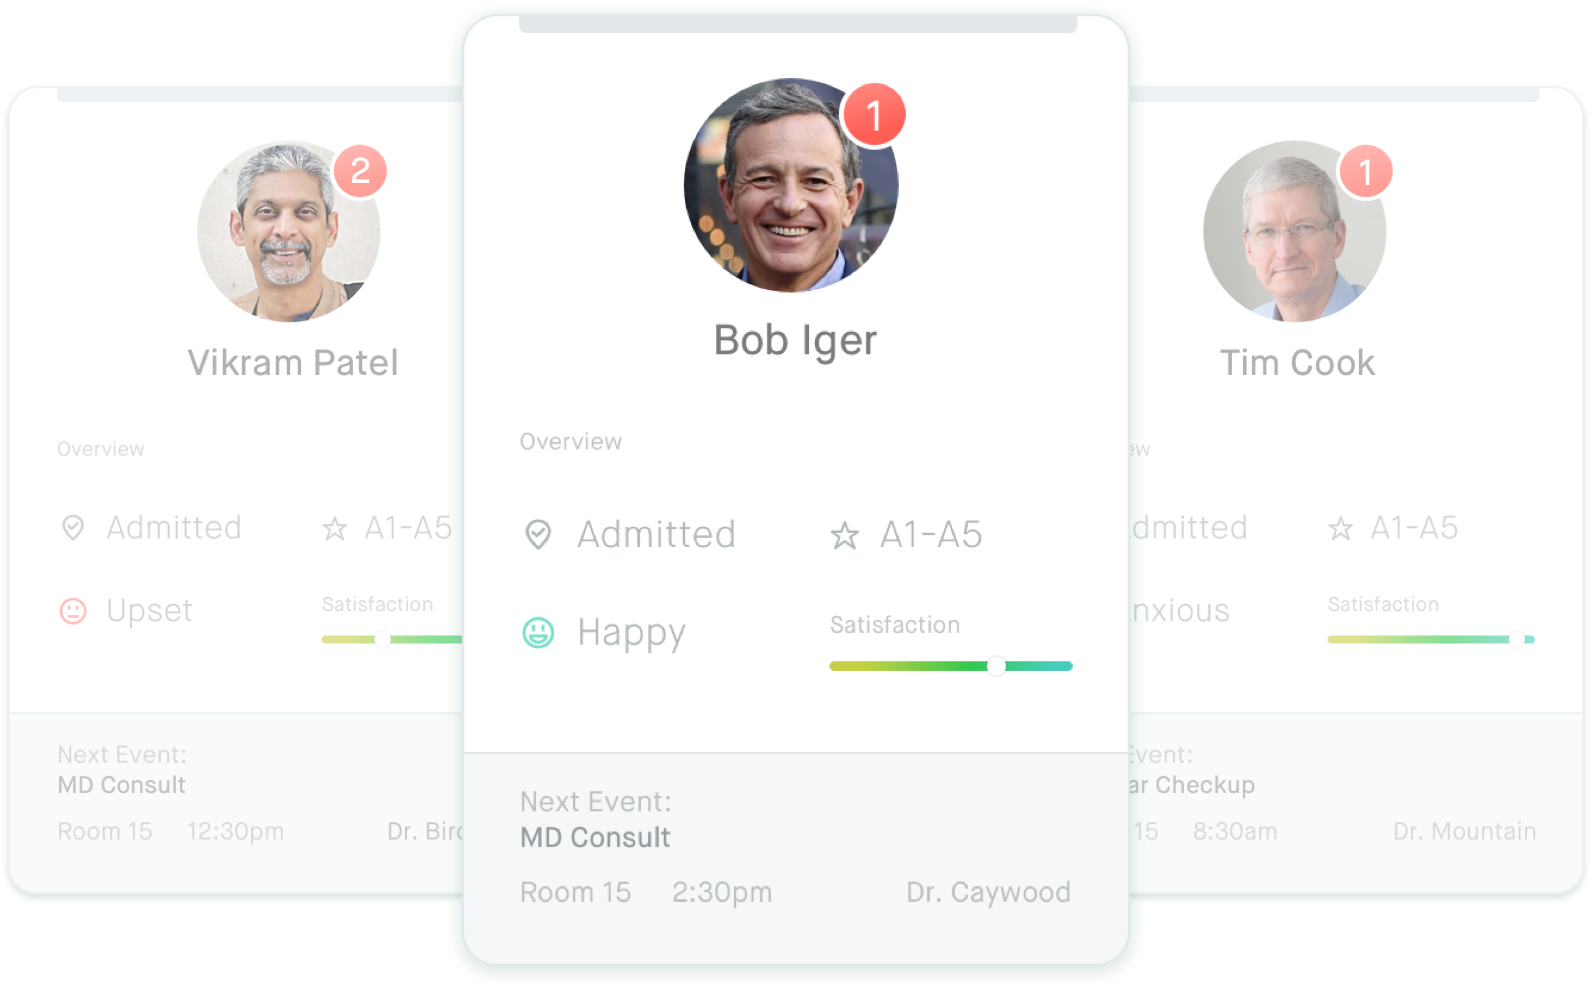 patient cards within the Docent interface